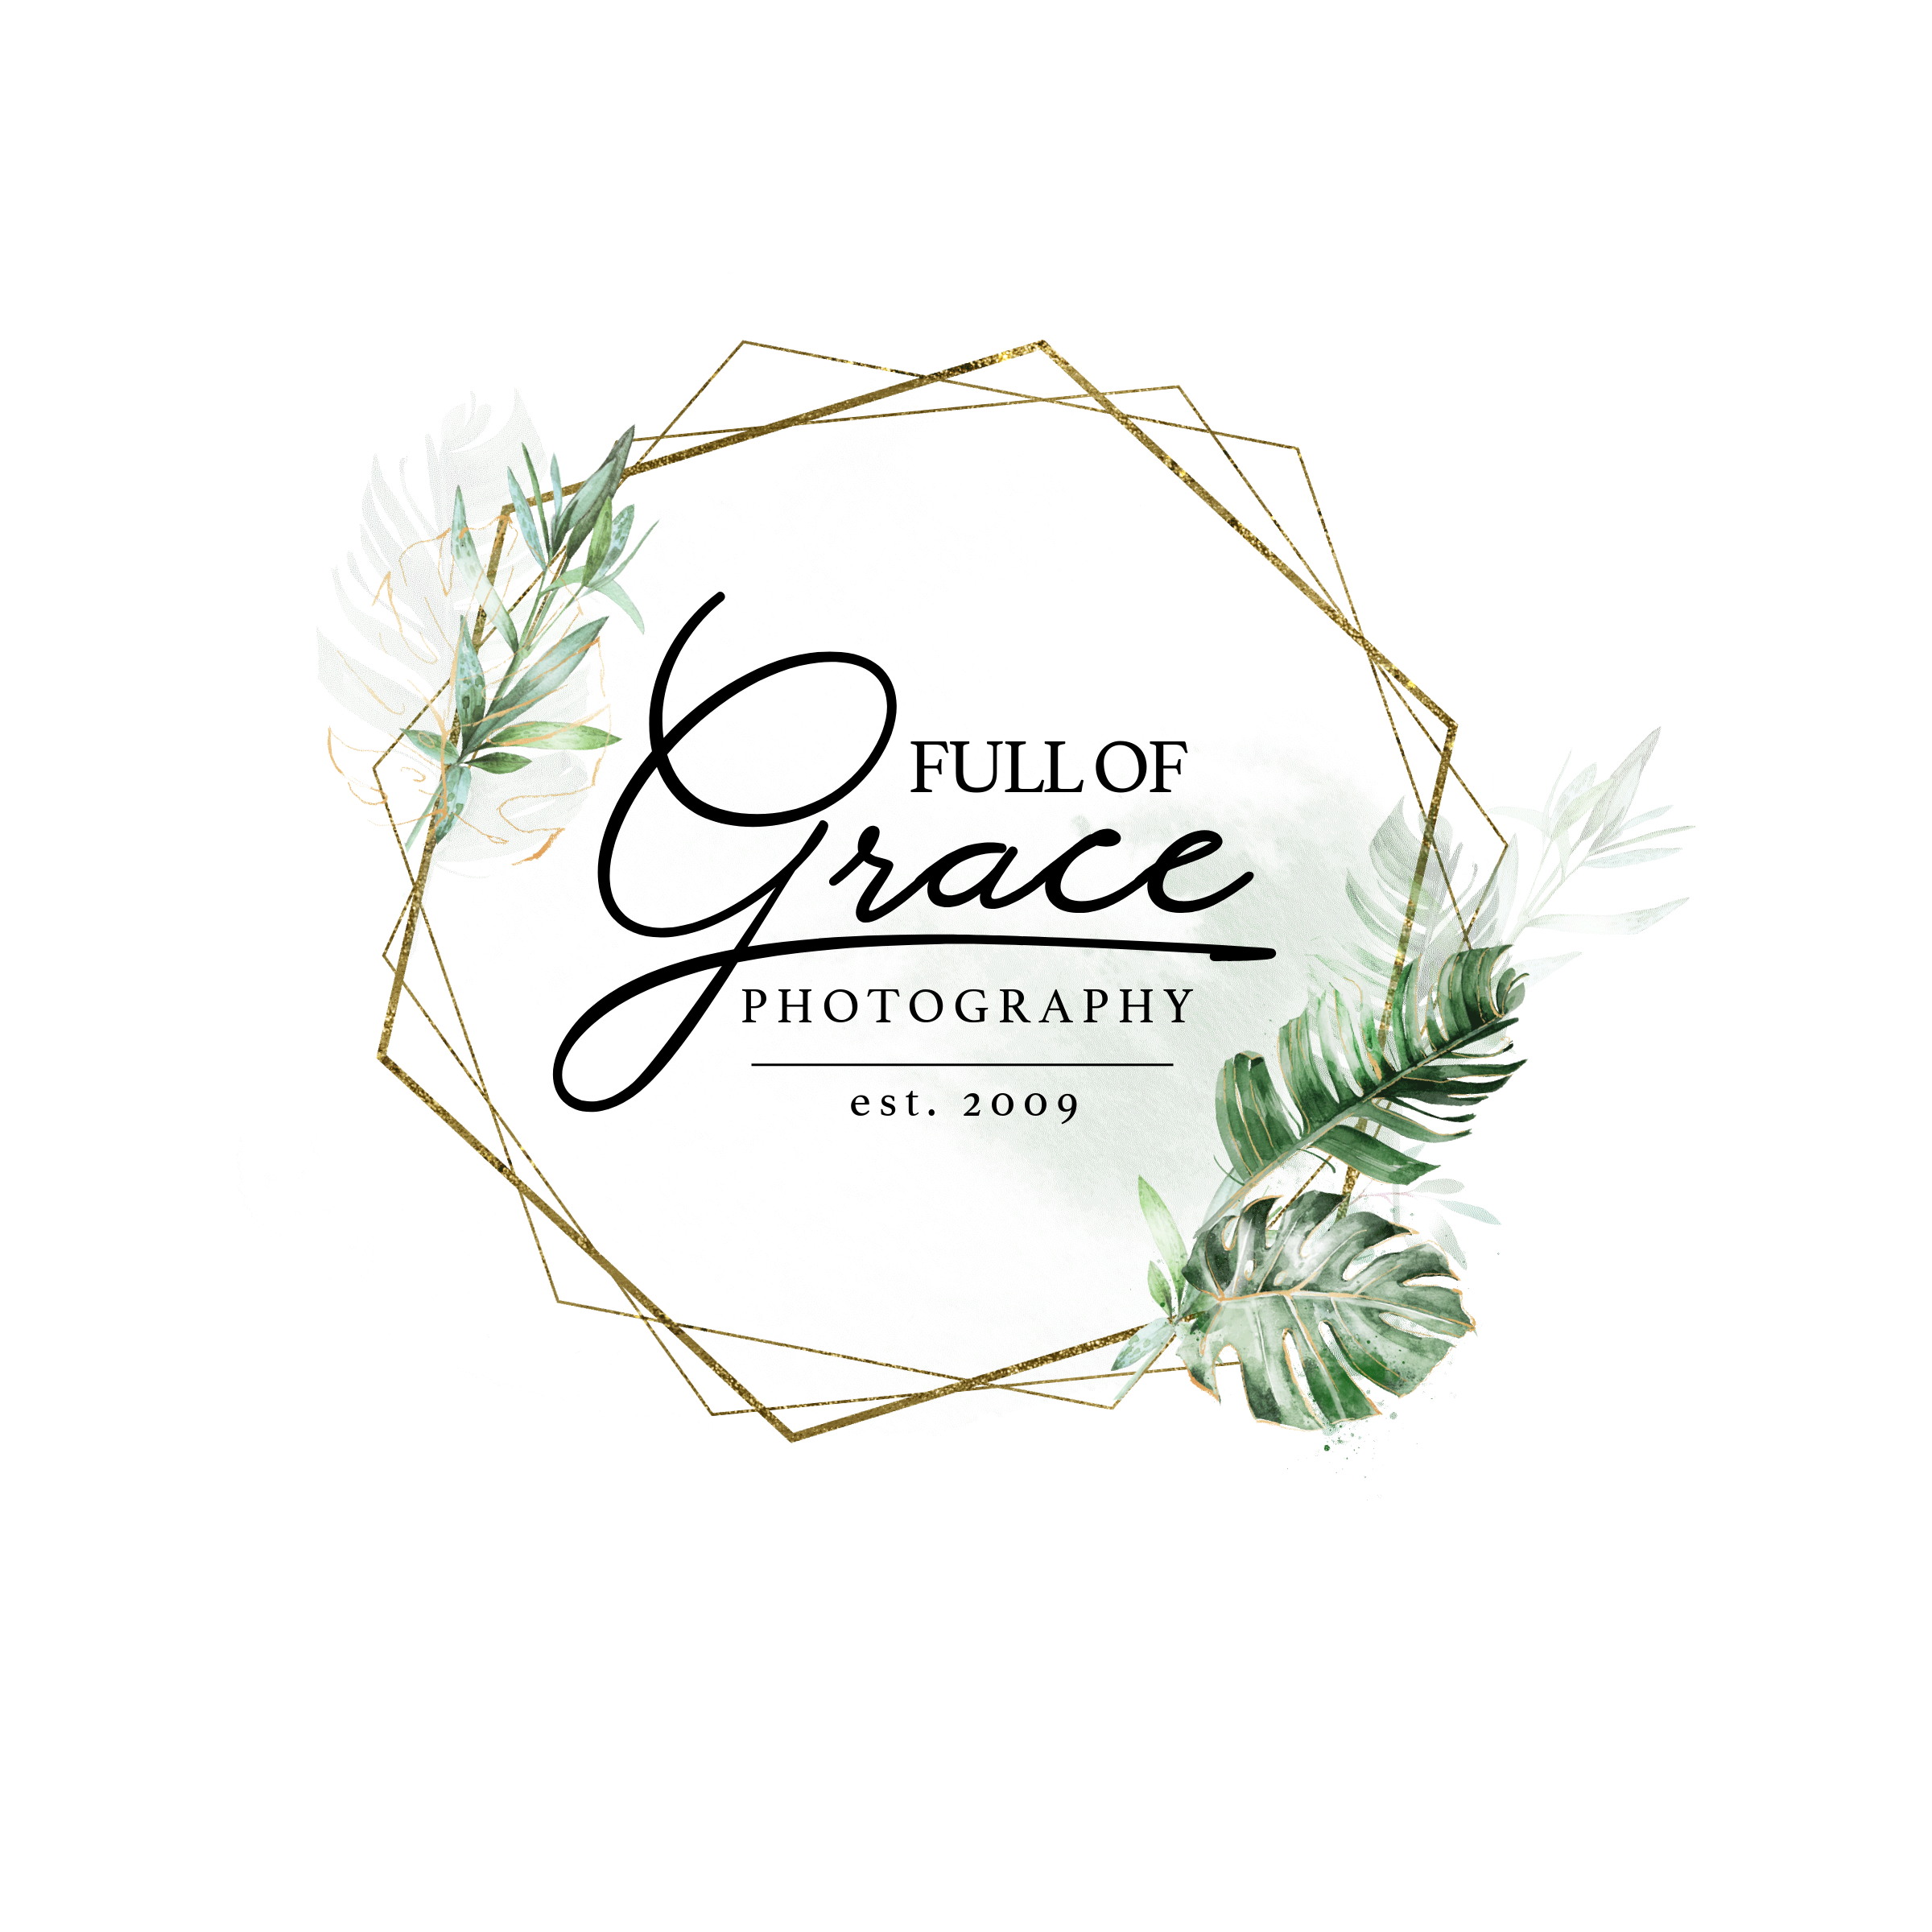 Full of Grace Photography